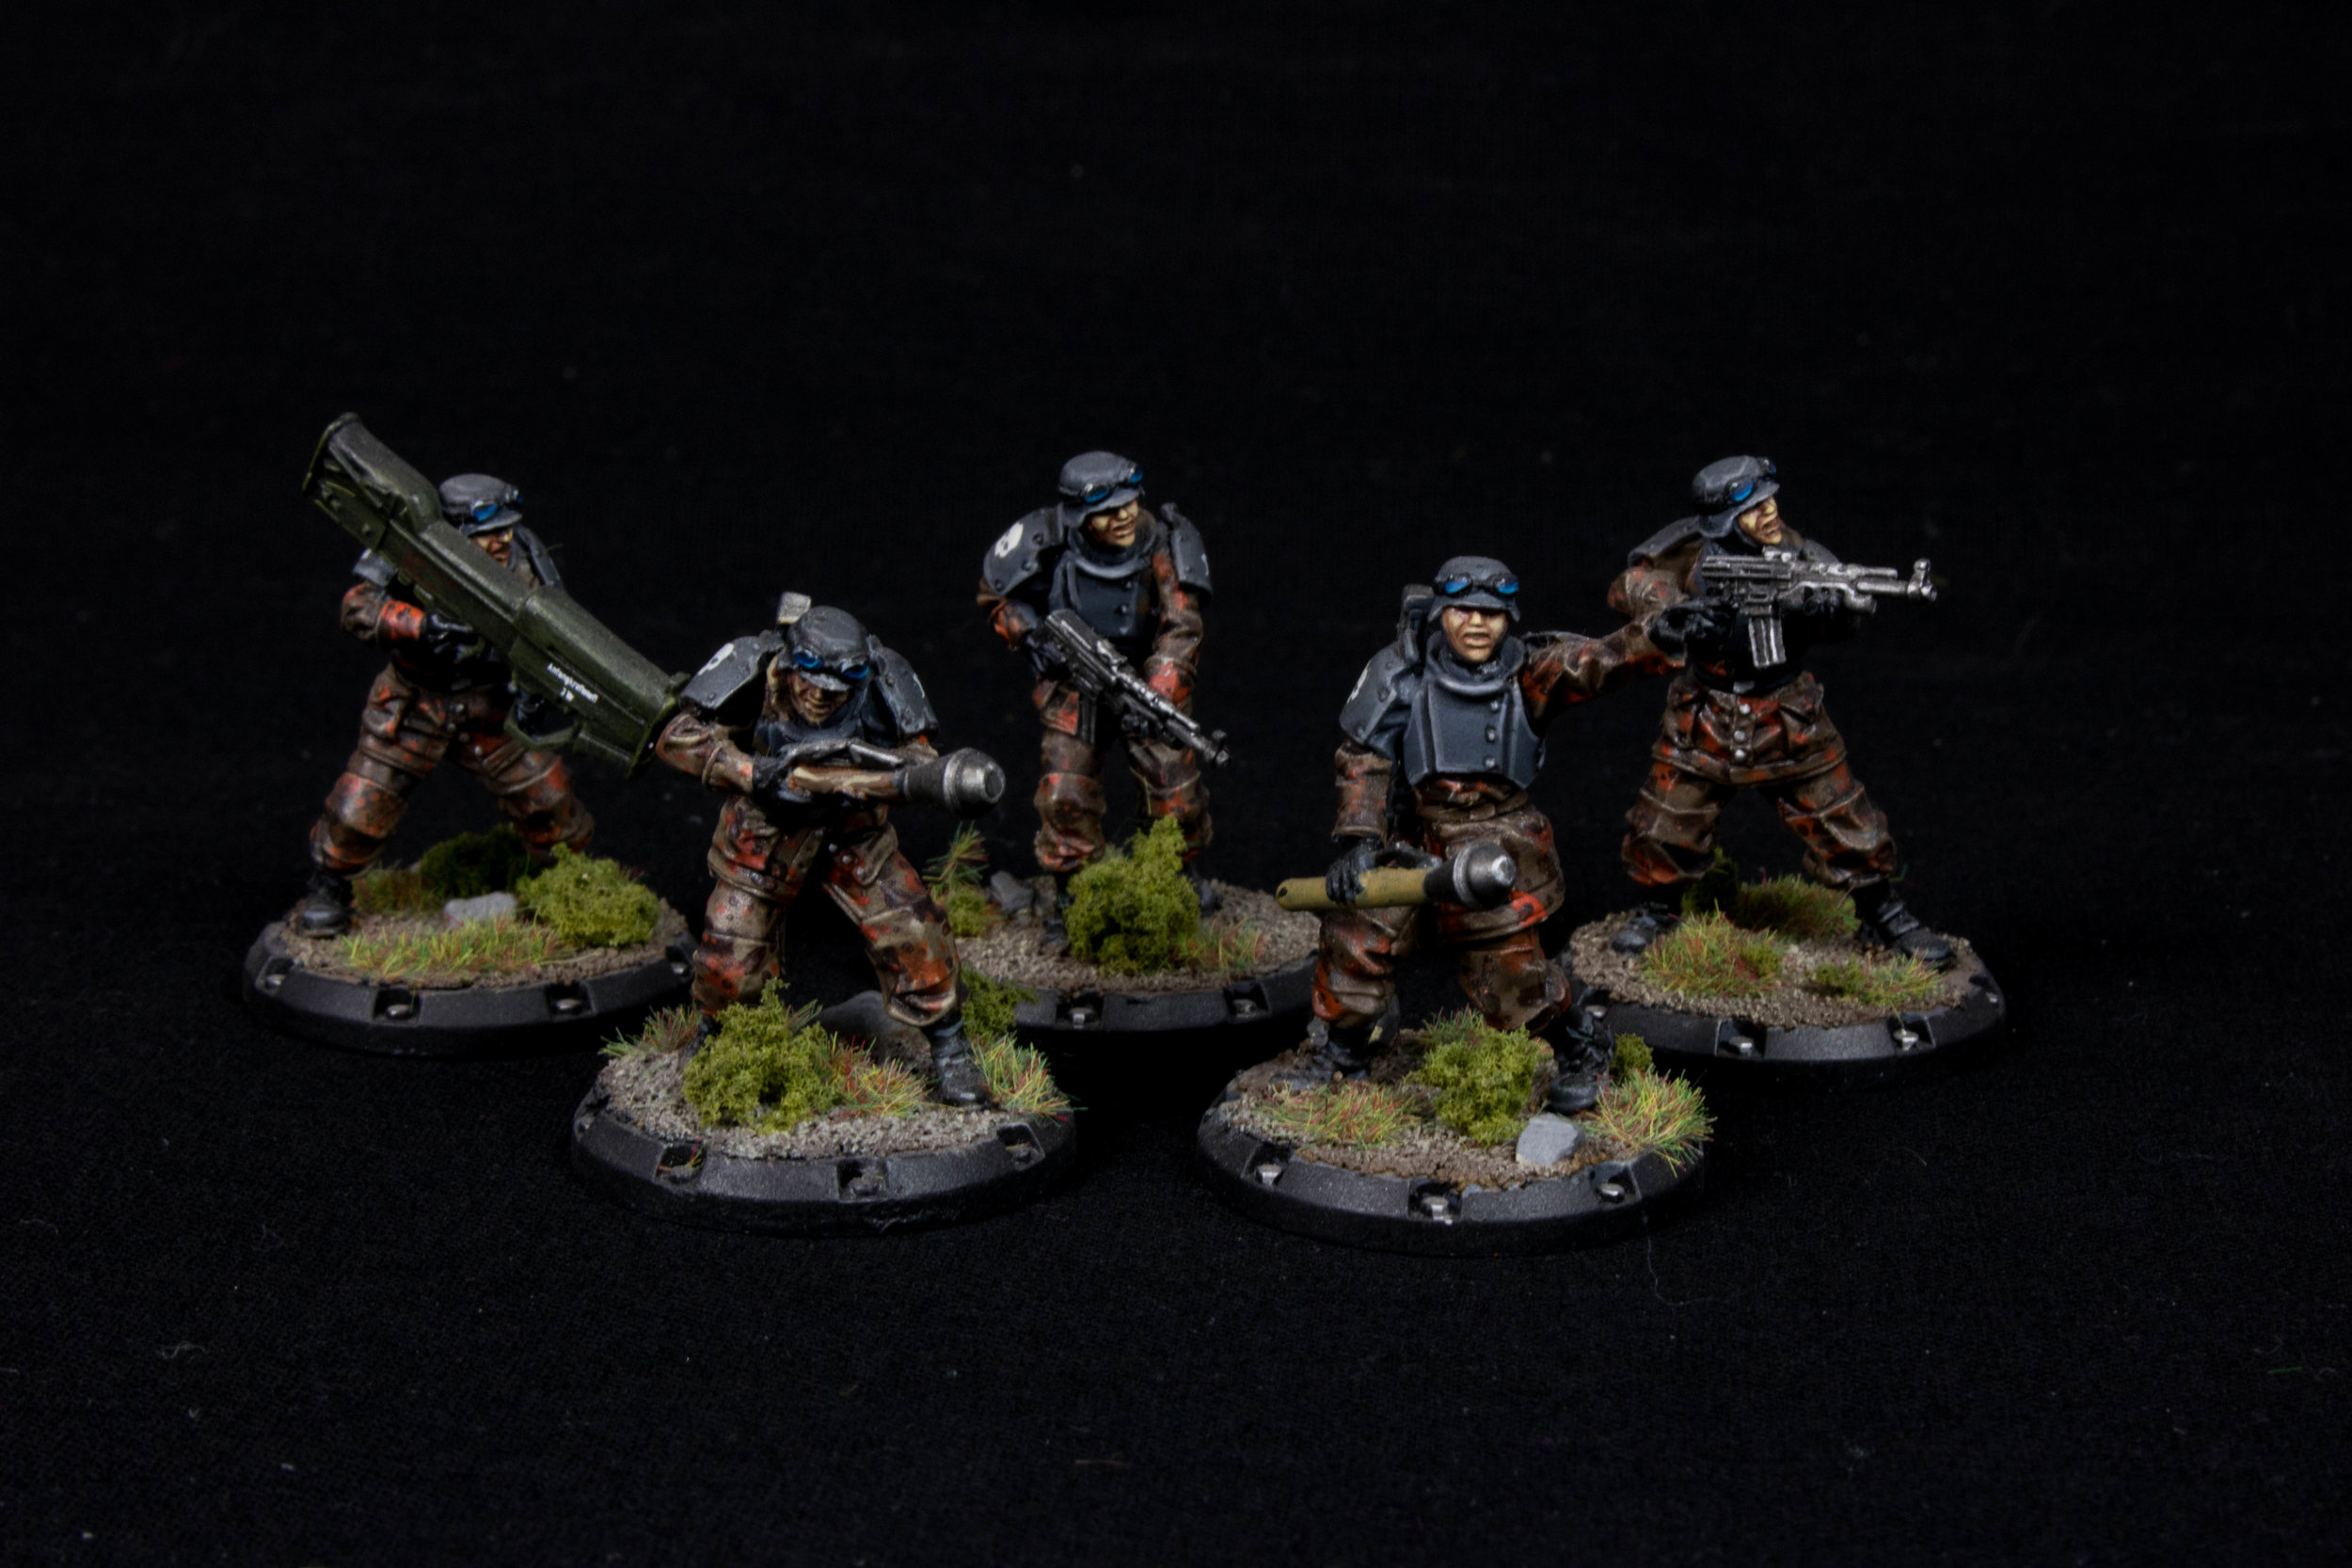 Dust Tactics WWII Warfare Germans Americans Axis Allies Bolt Action 28mm Alternate WWII-11.jpg